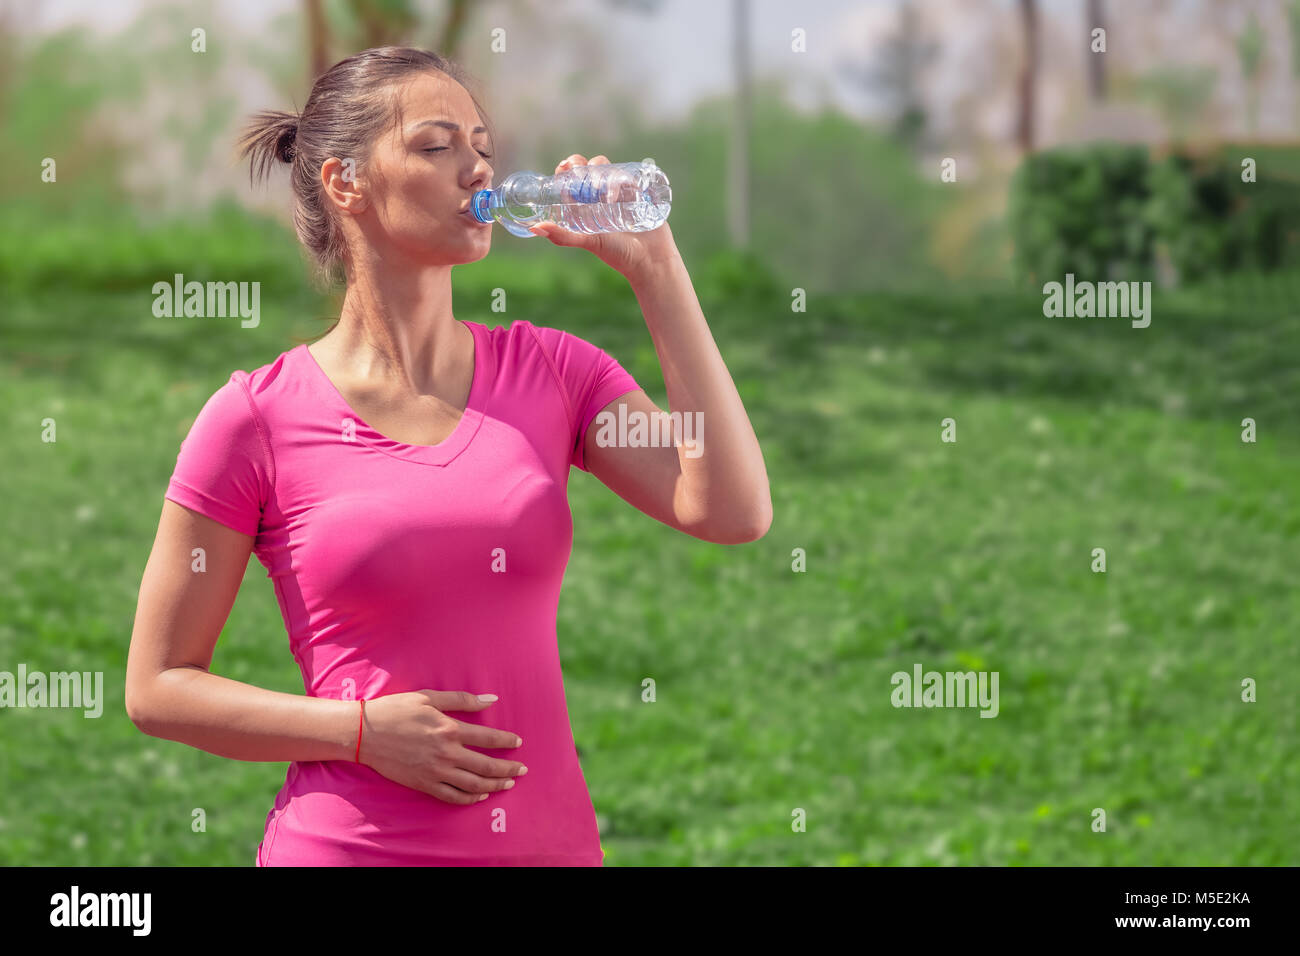 Fitness runner woman drinking water in the park. Athlete girl taking a break during run to hydrate during hot summer - Stock Image